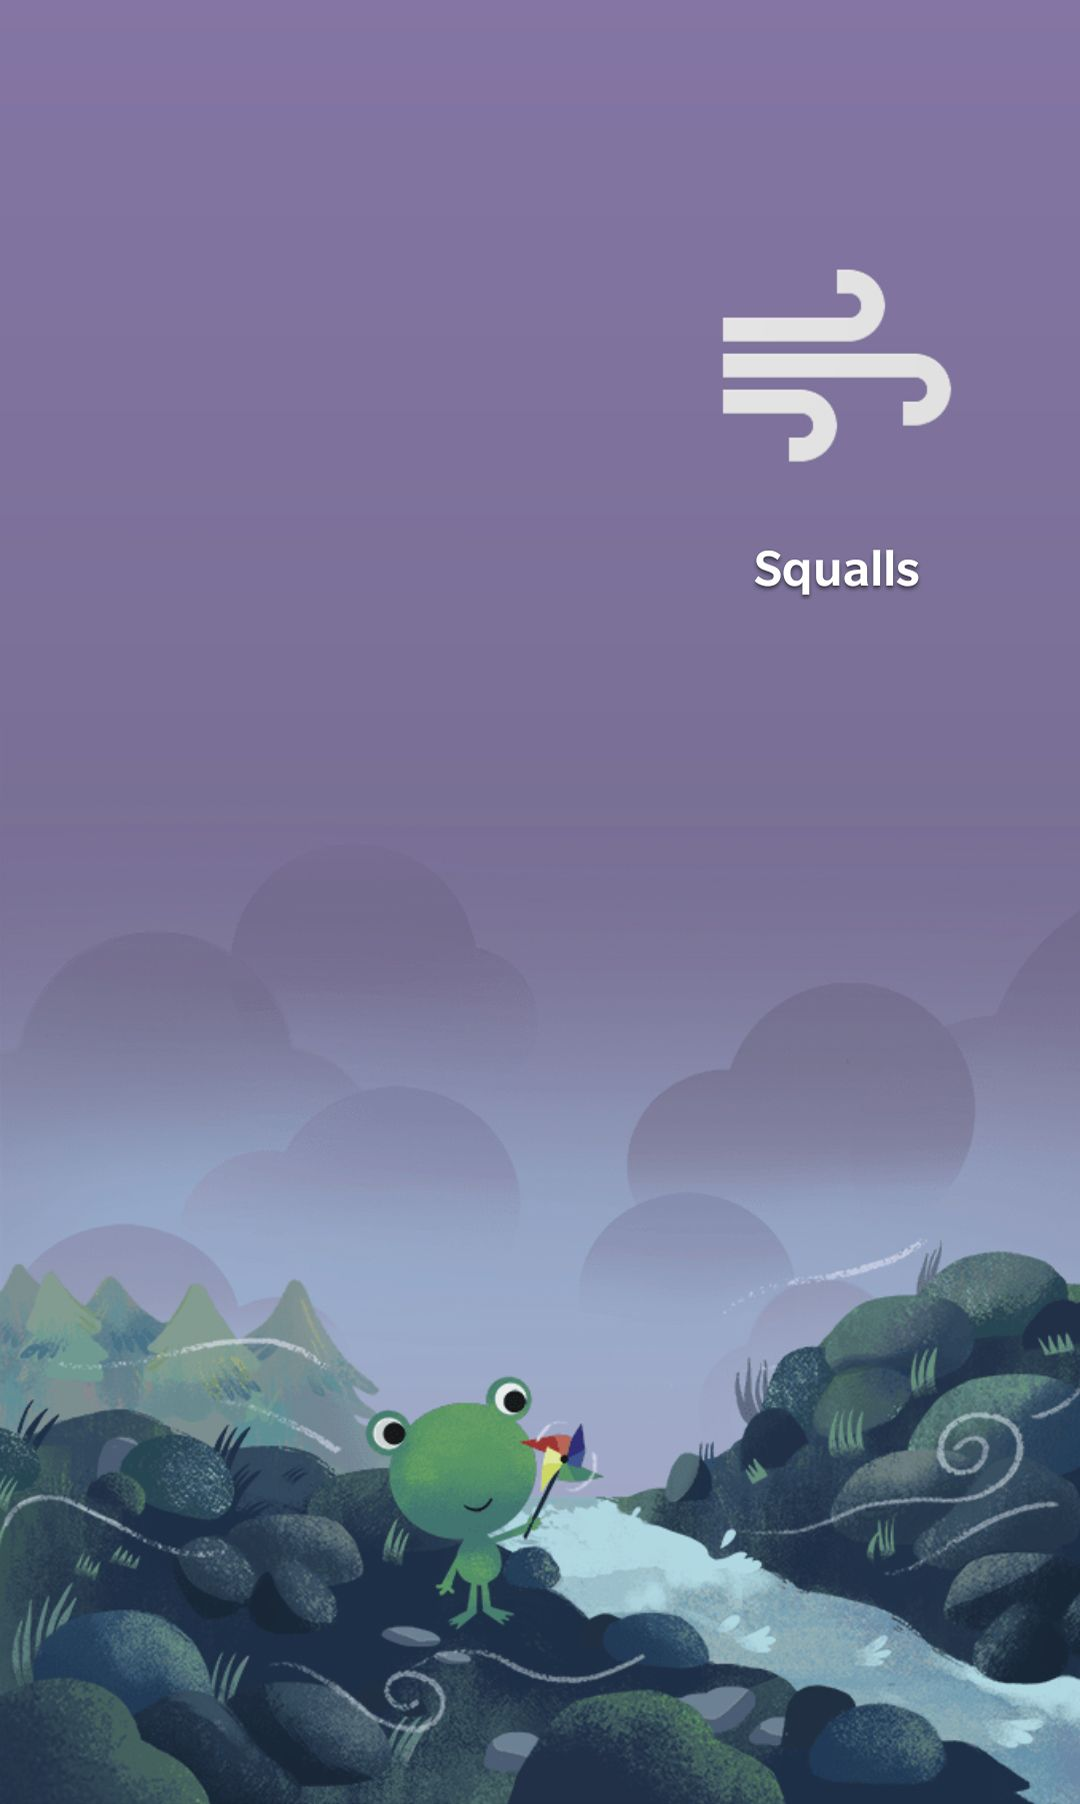 Android Google weather frog squalls windy Frog